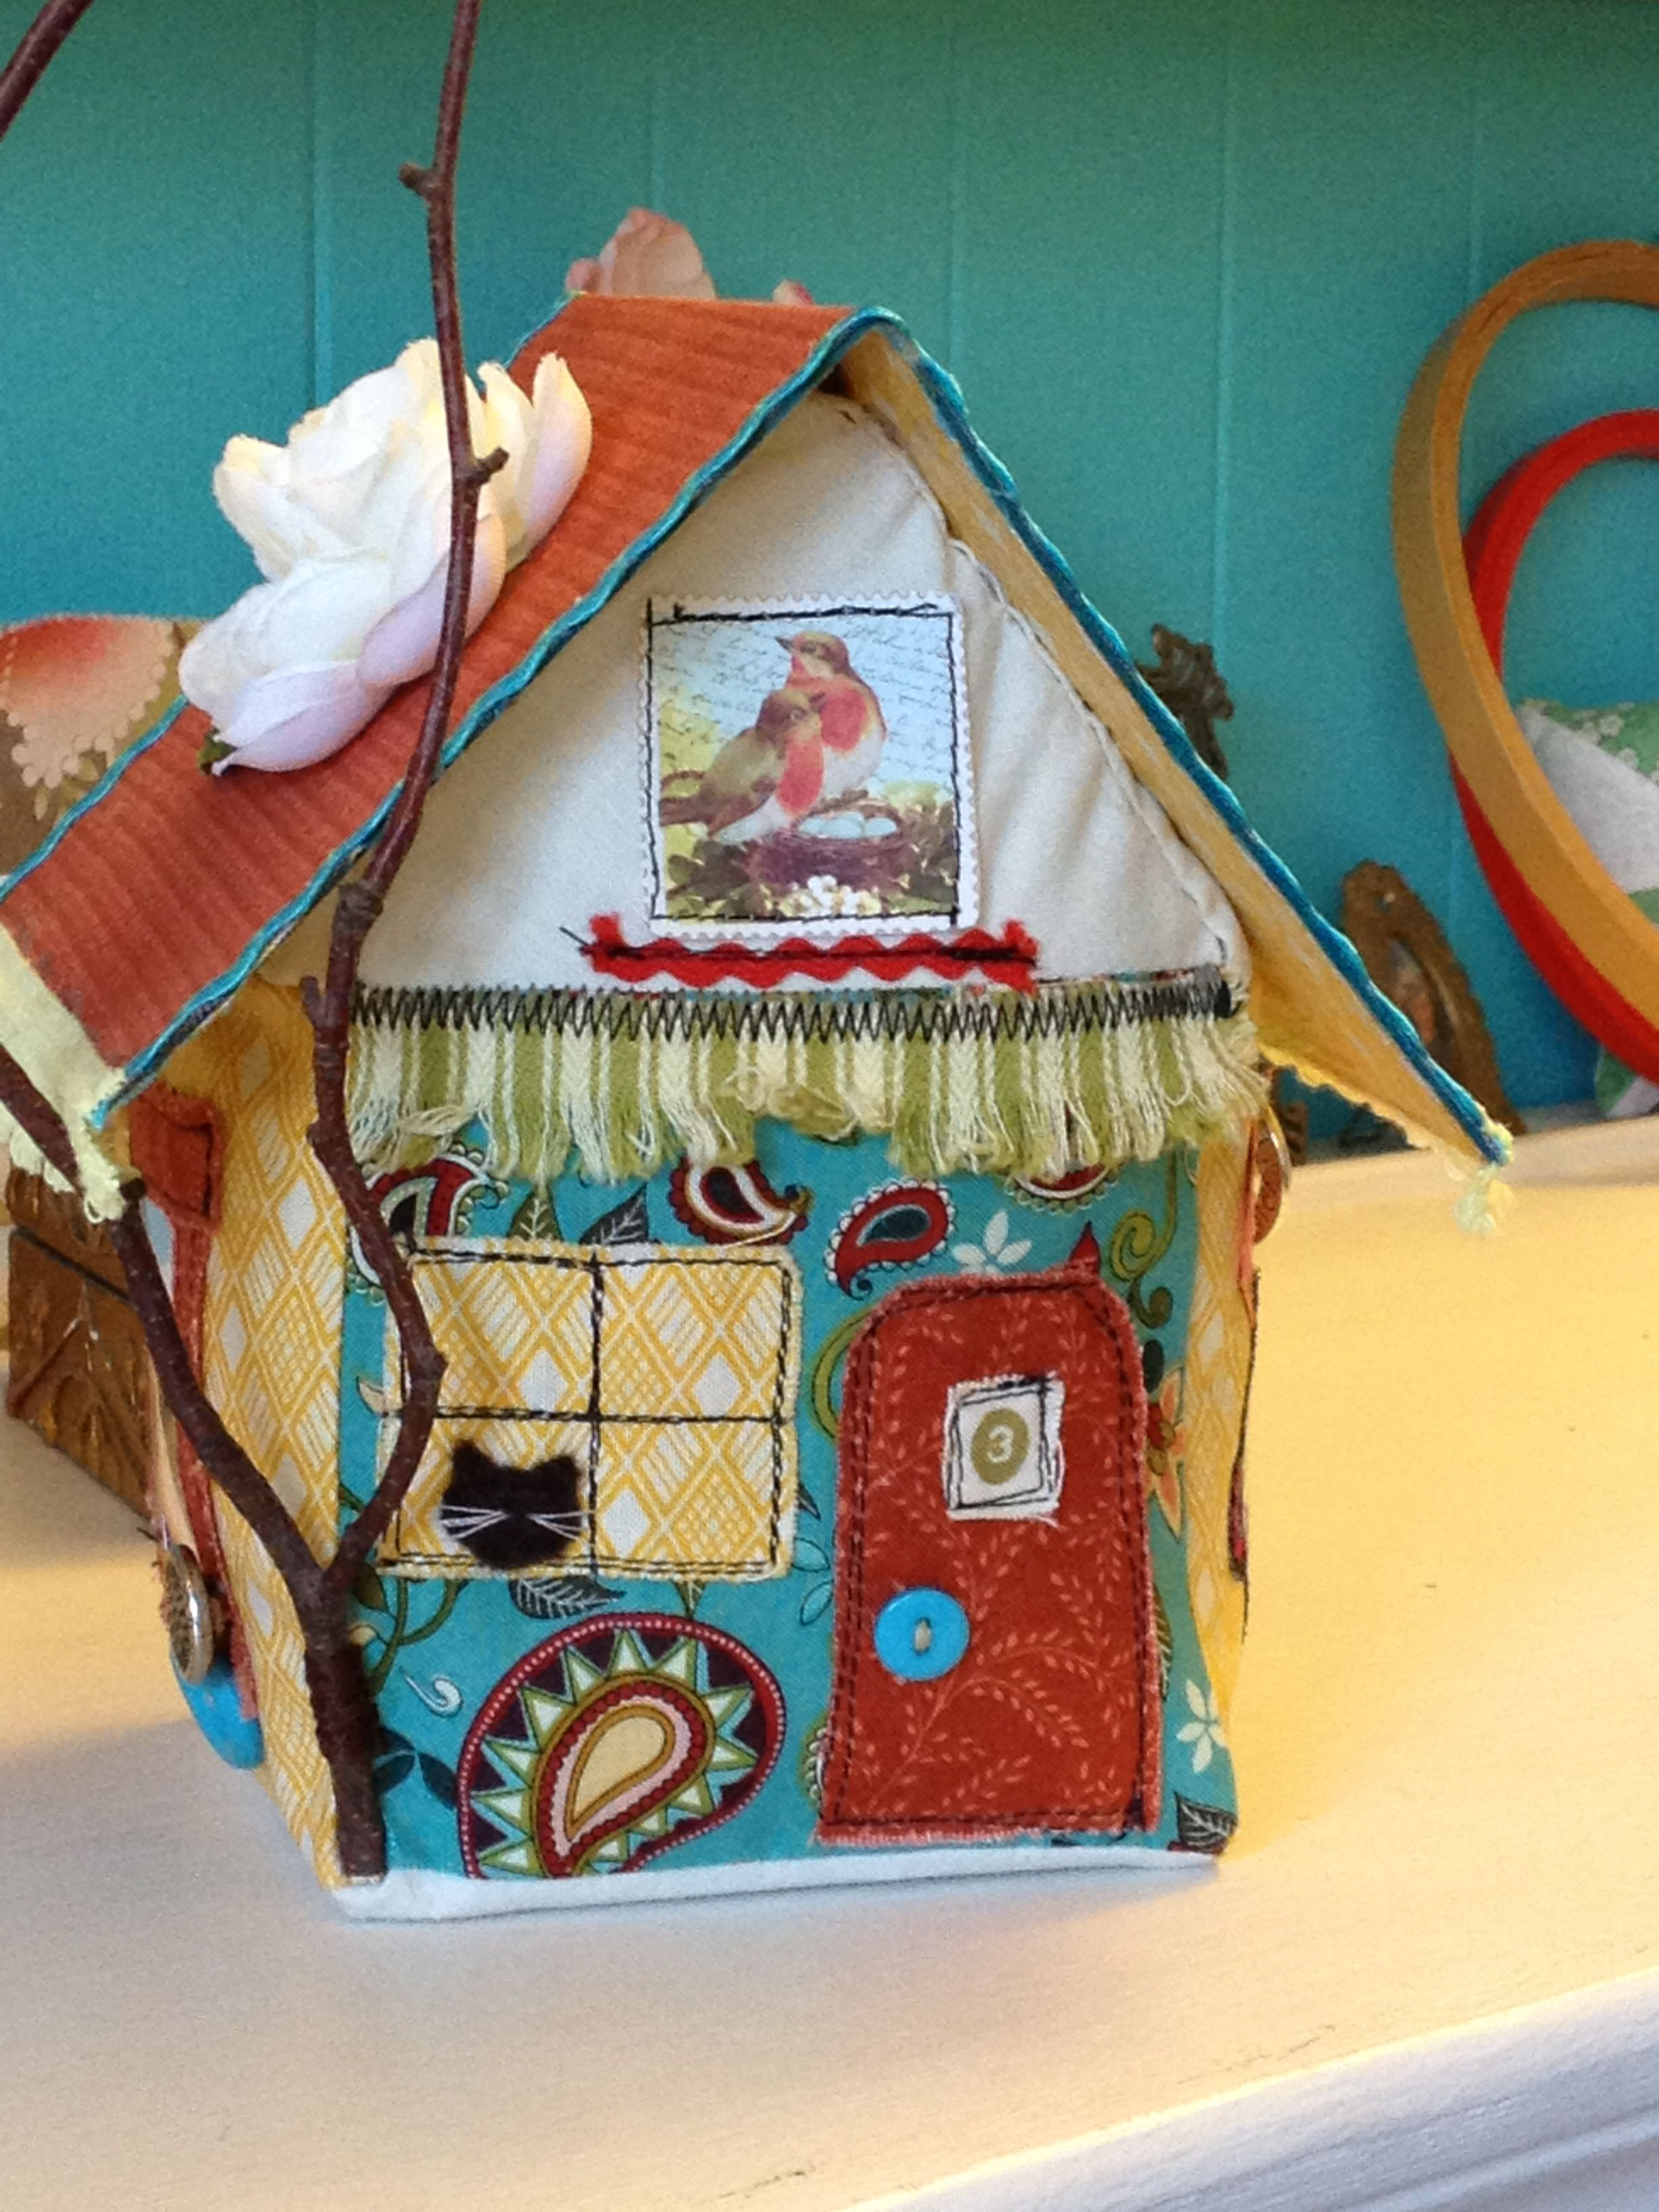 Fabric House For Bev Fabric Doll House Fabric Houses Crafts